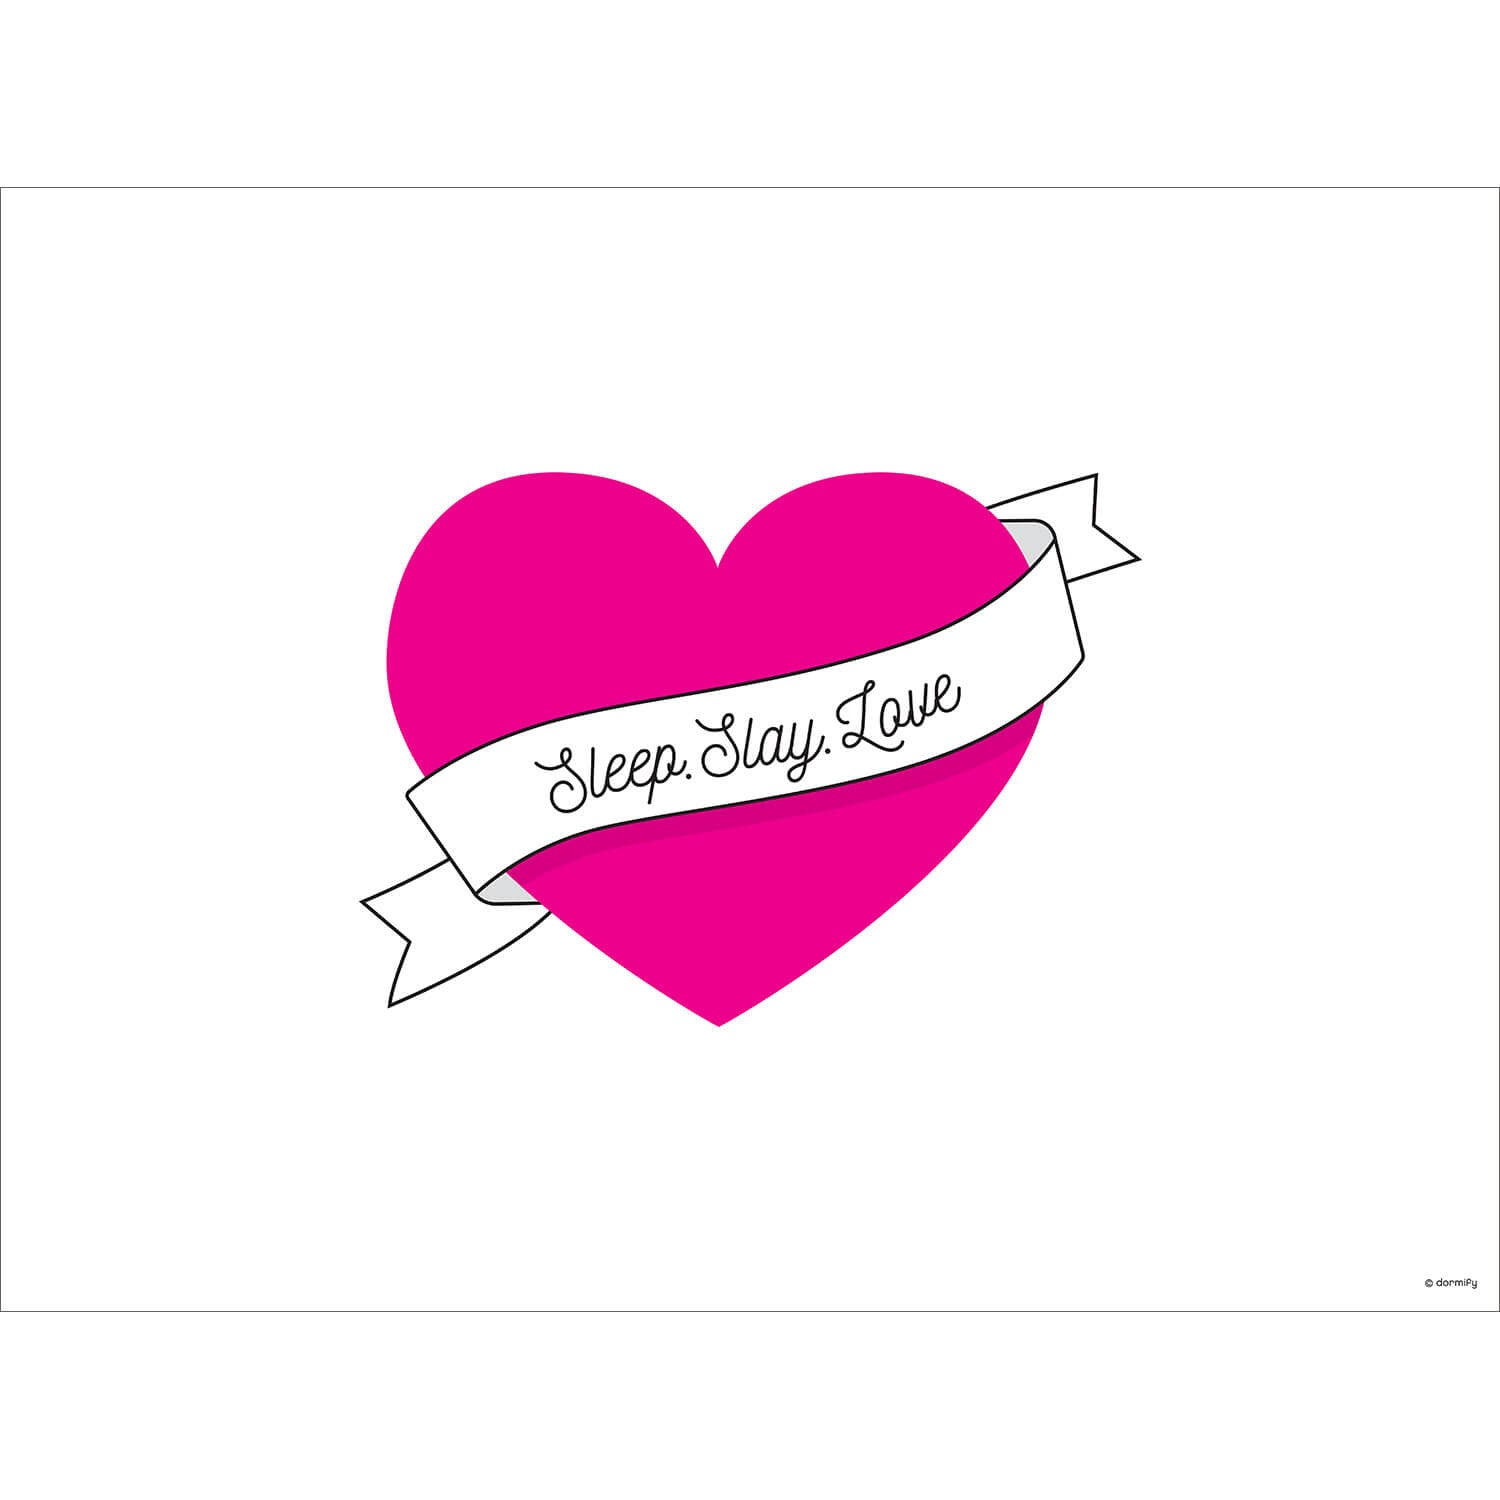 Sleep Slay Love Print - Pink 9x12